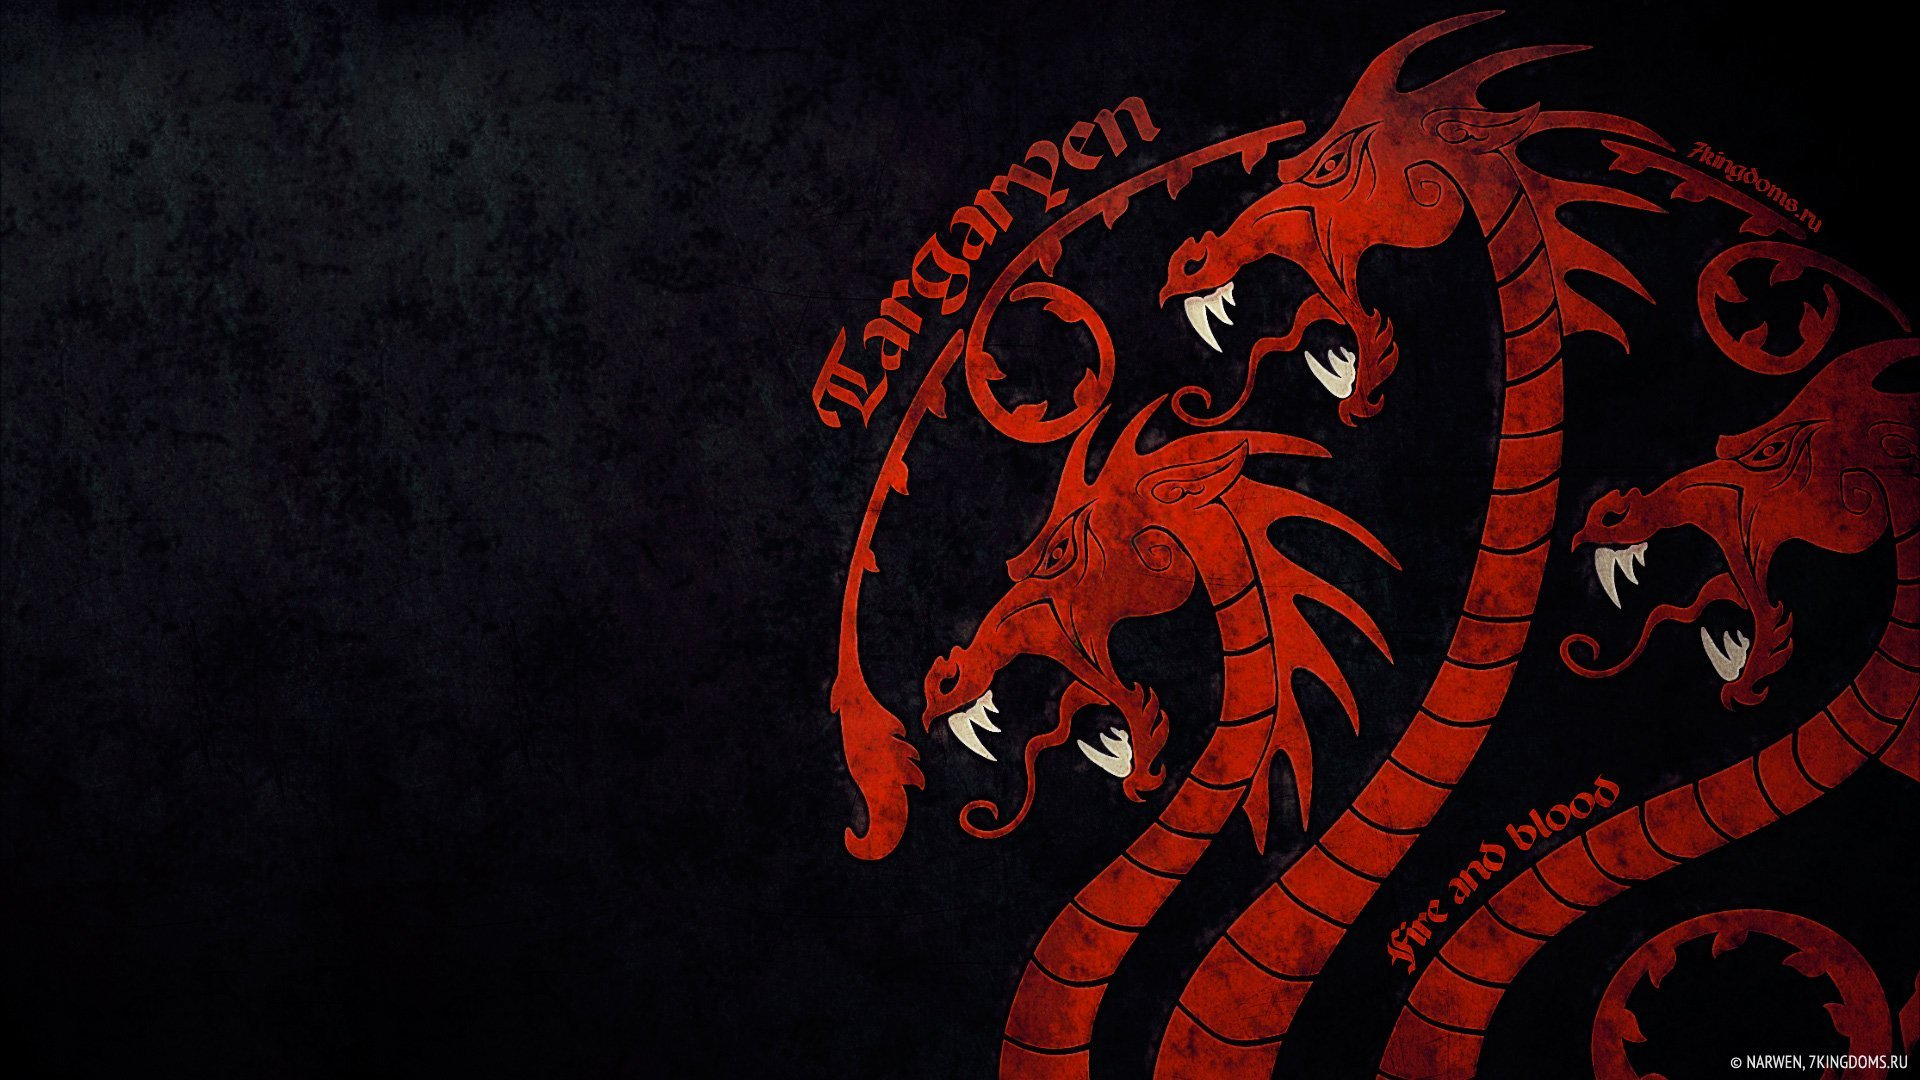 http://7kingdoms.ru/wp-content/uploads/2009/07/wallpaper_targ2_1920.jpg